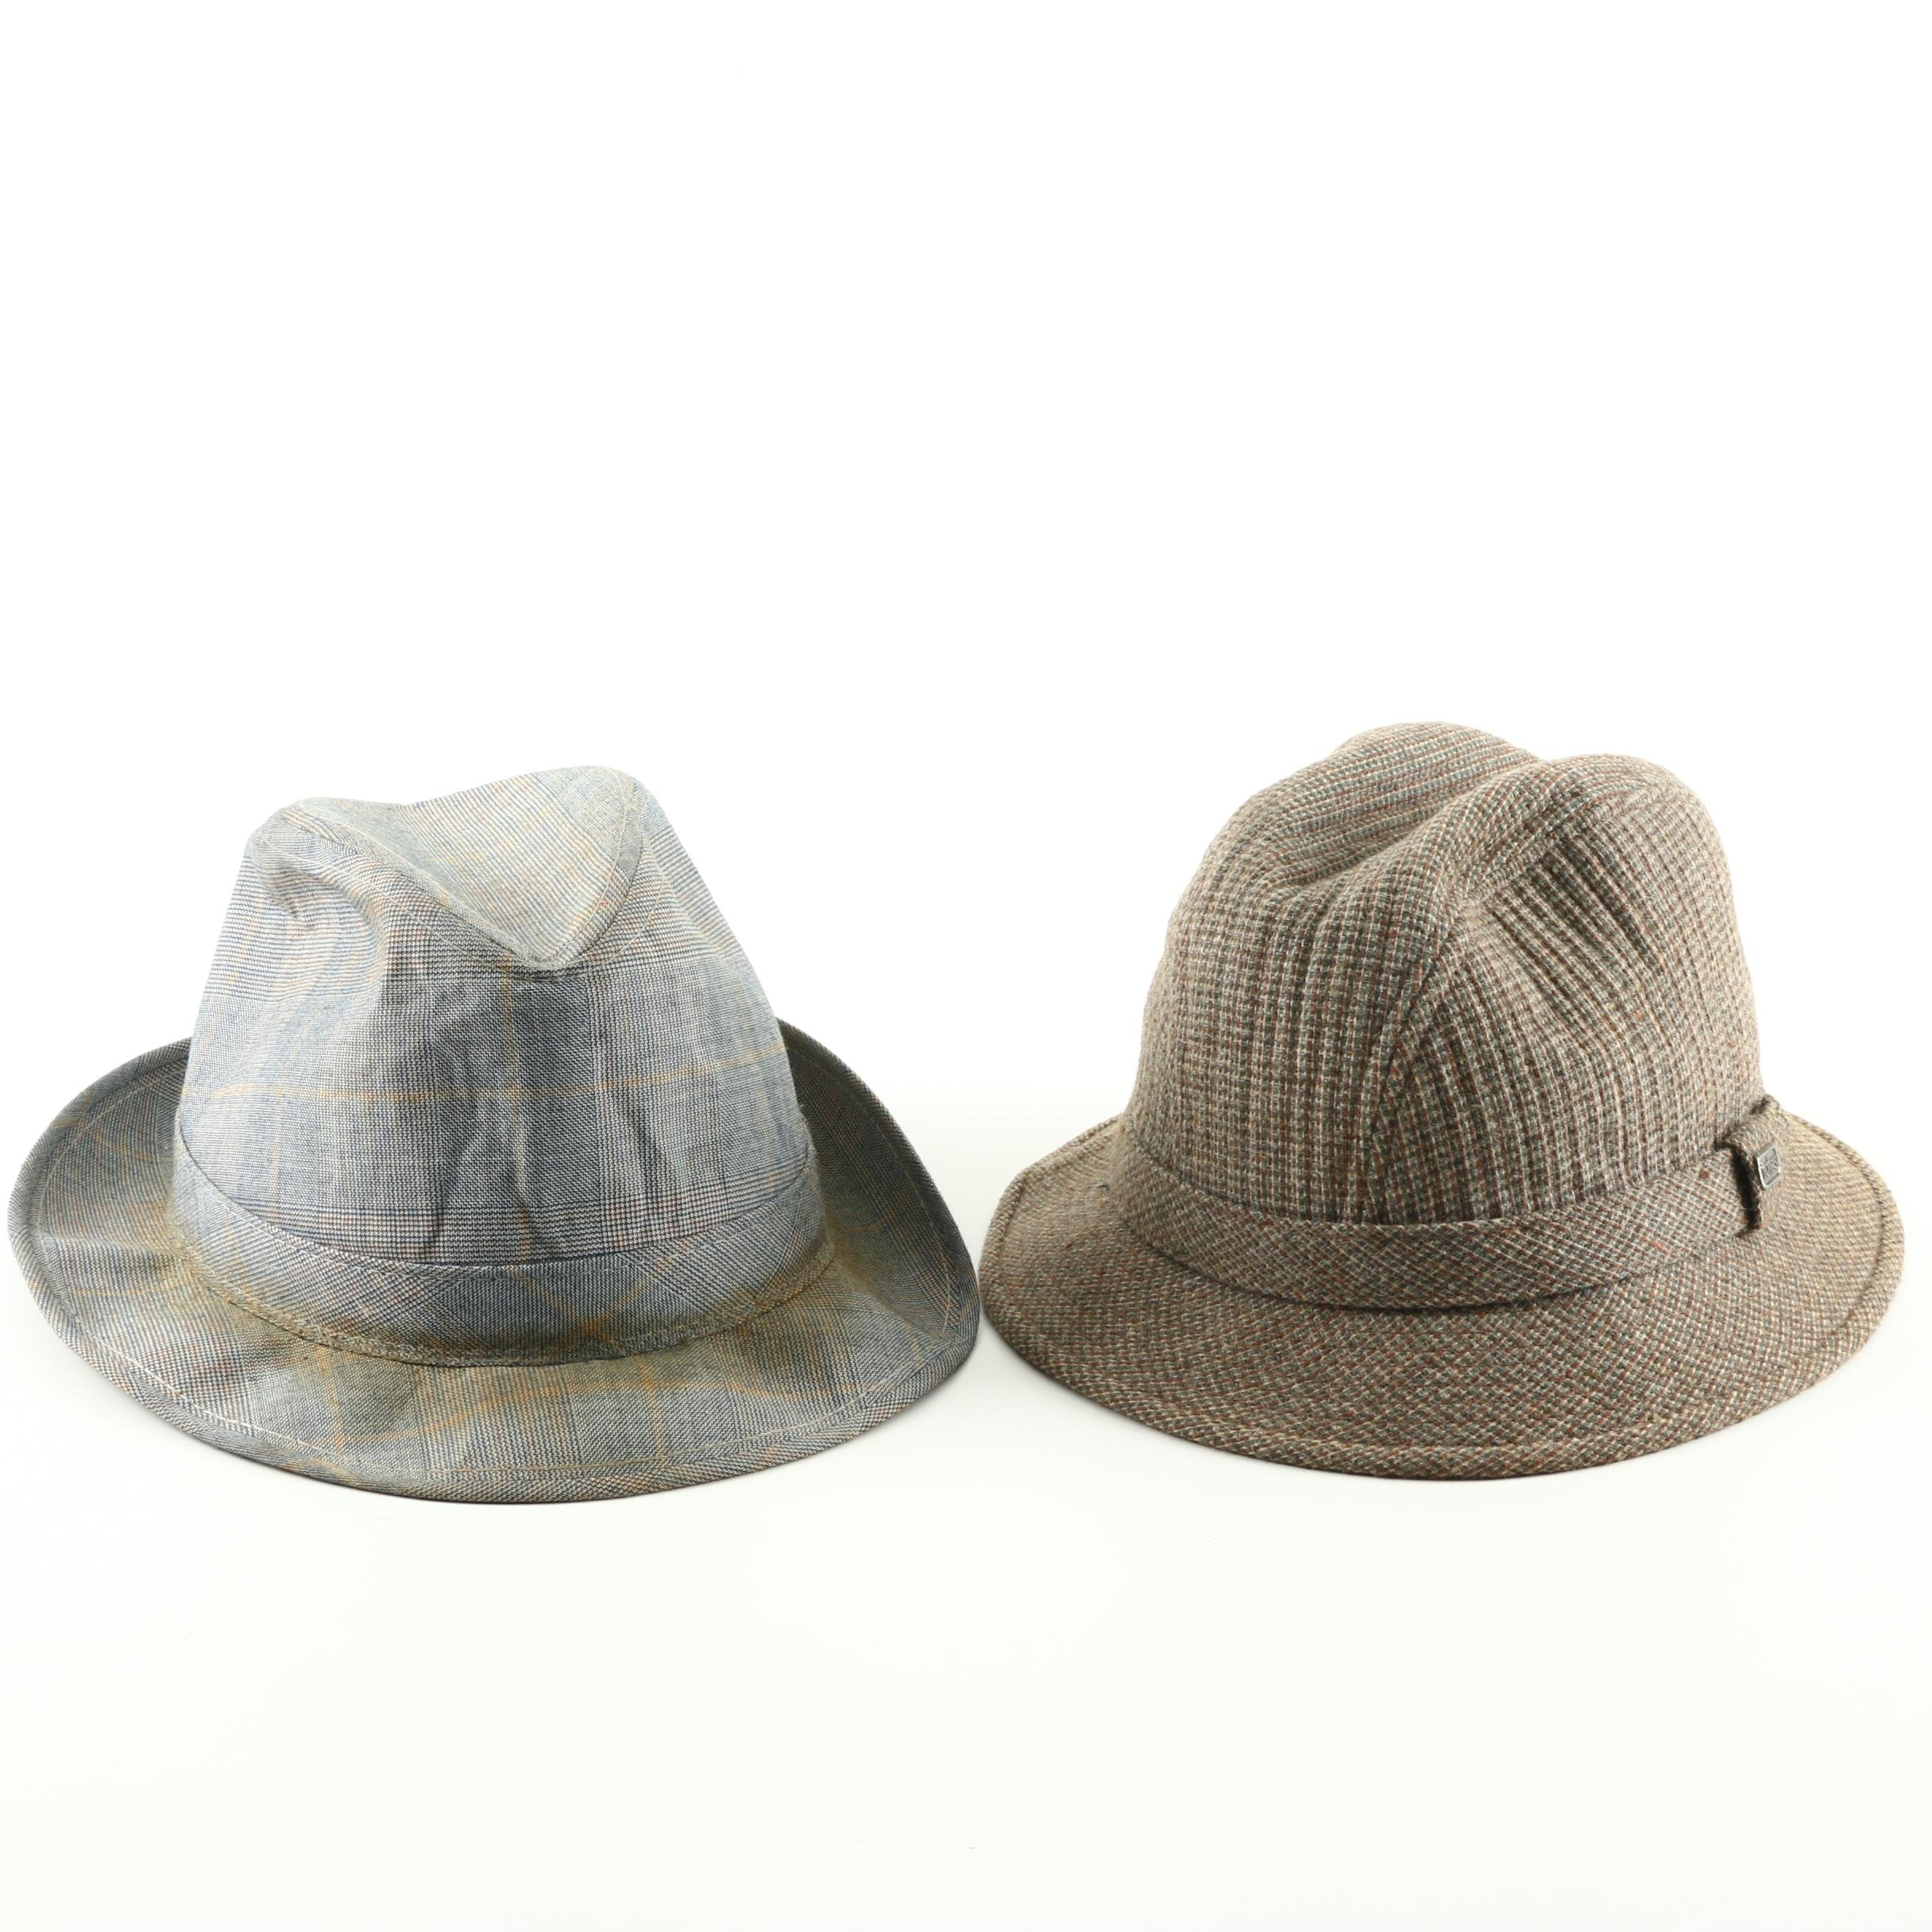 Men's Totes Hat and Vintage Plaid Homburg Hat